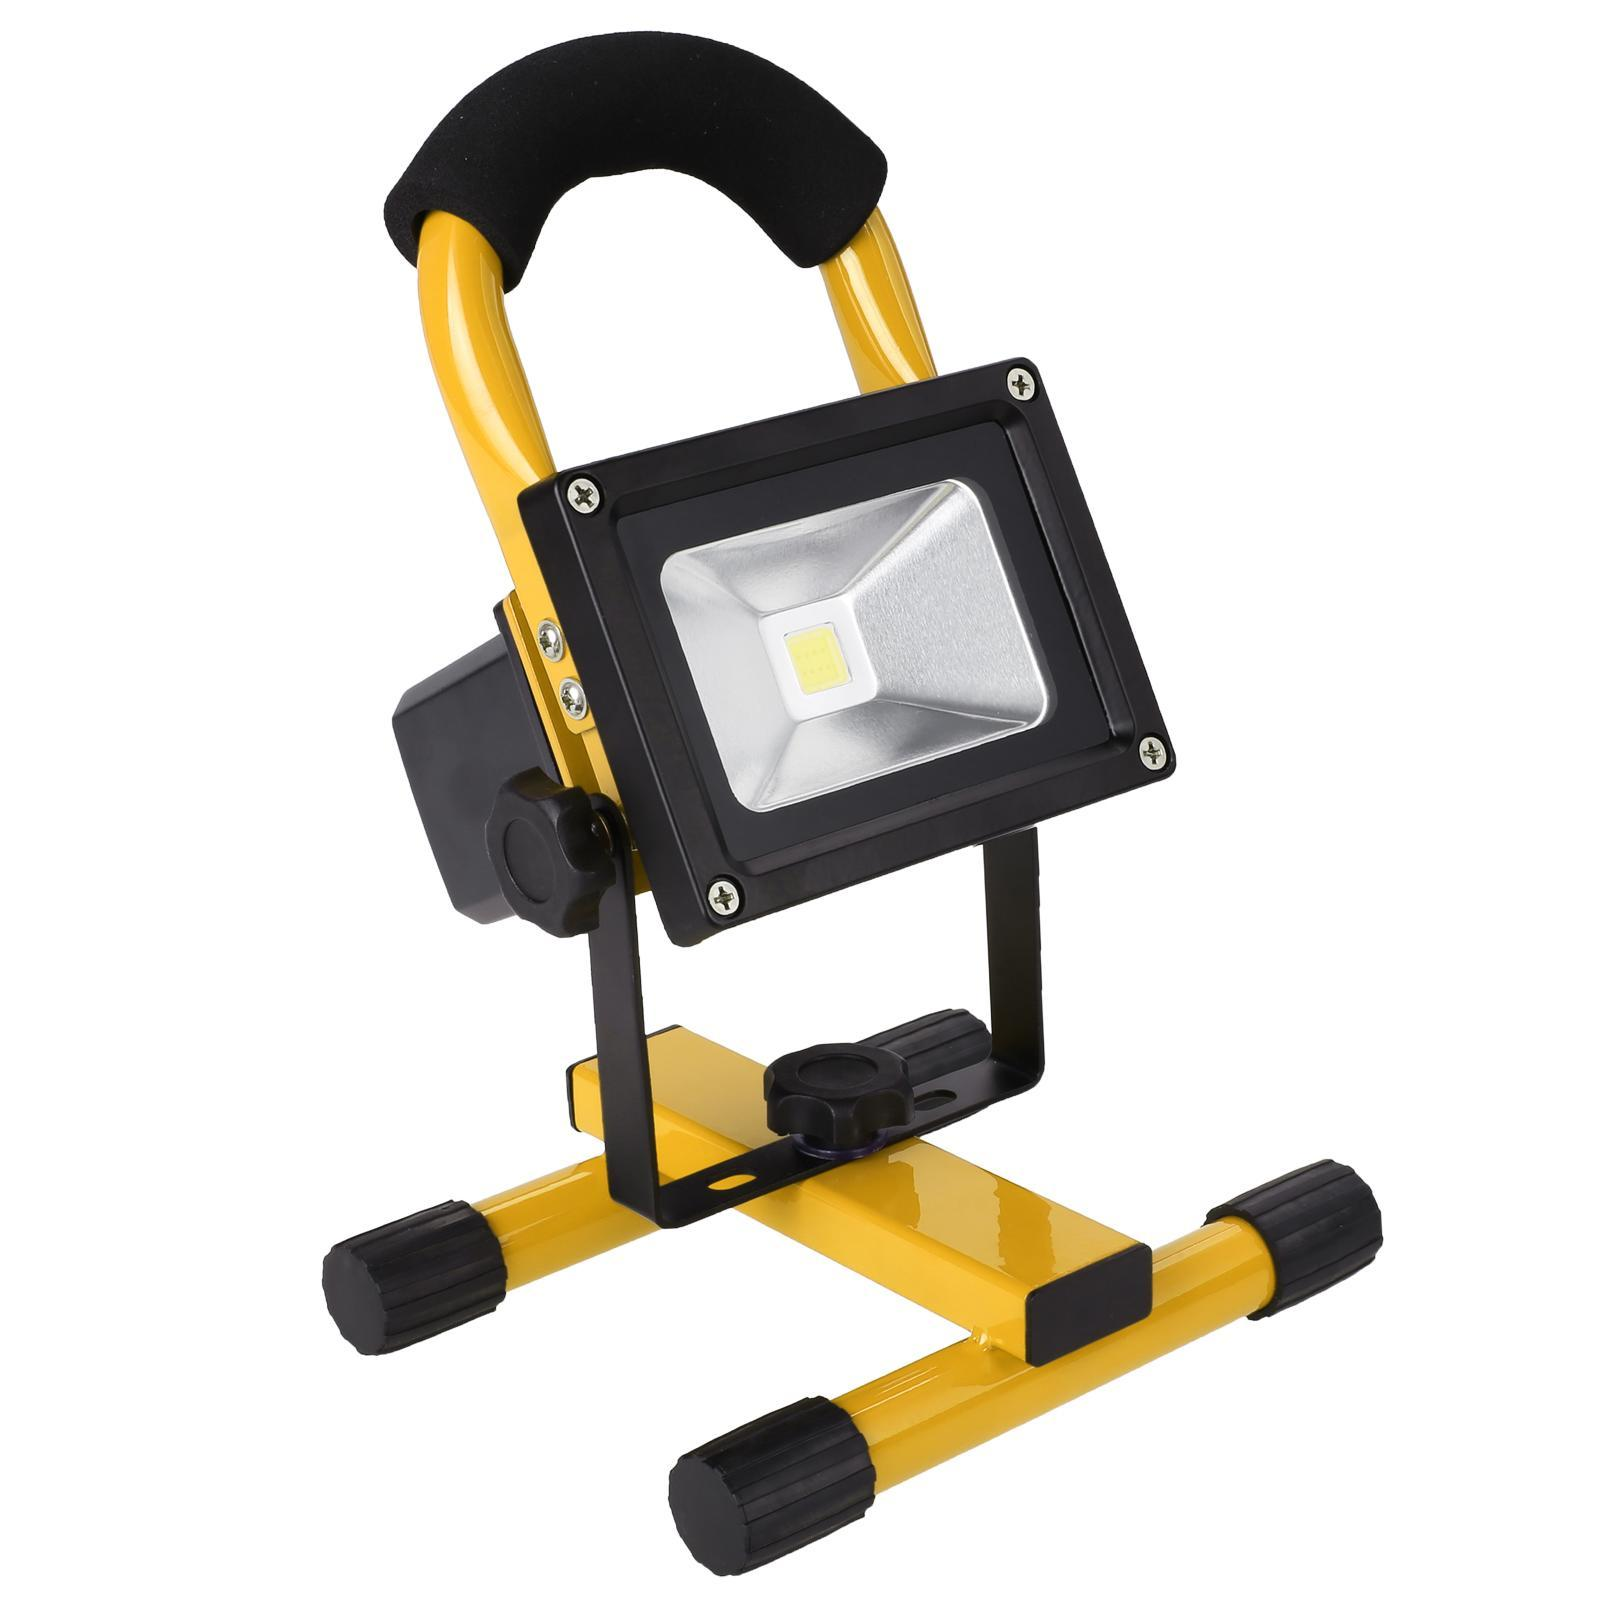 10W Wireless Rechargeable  US Plug LED Flood Light Outdoor Camping Hiking Lamp  CYBST